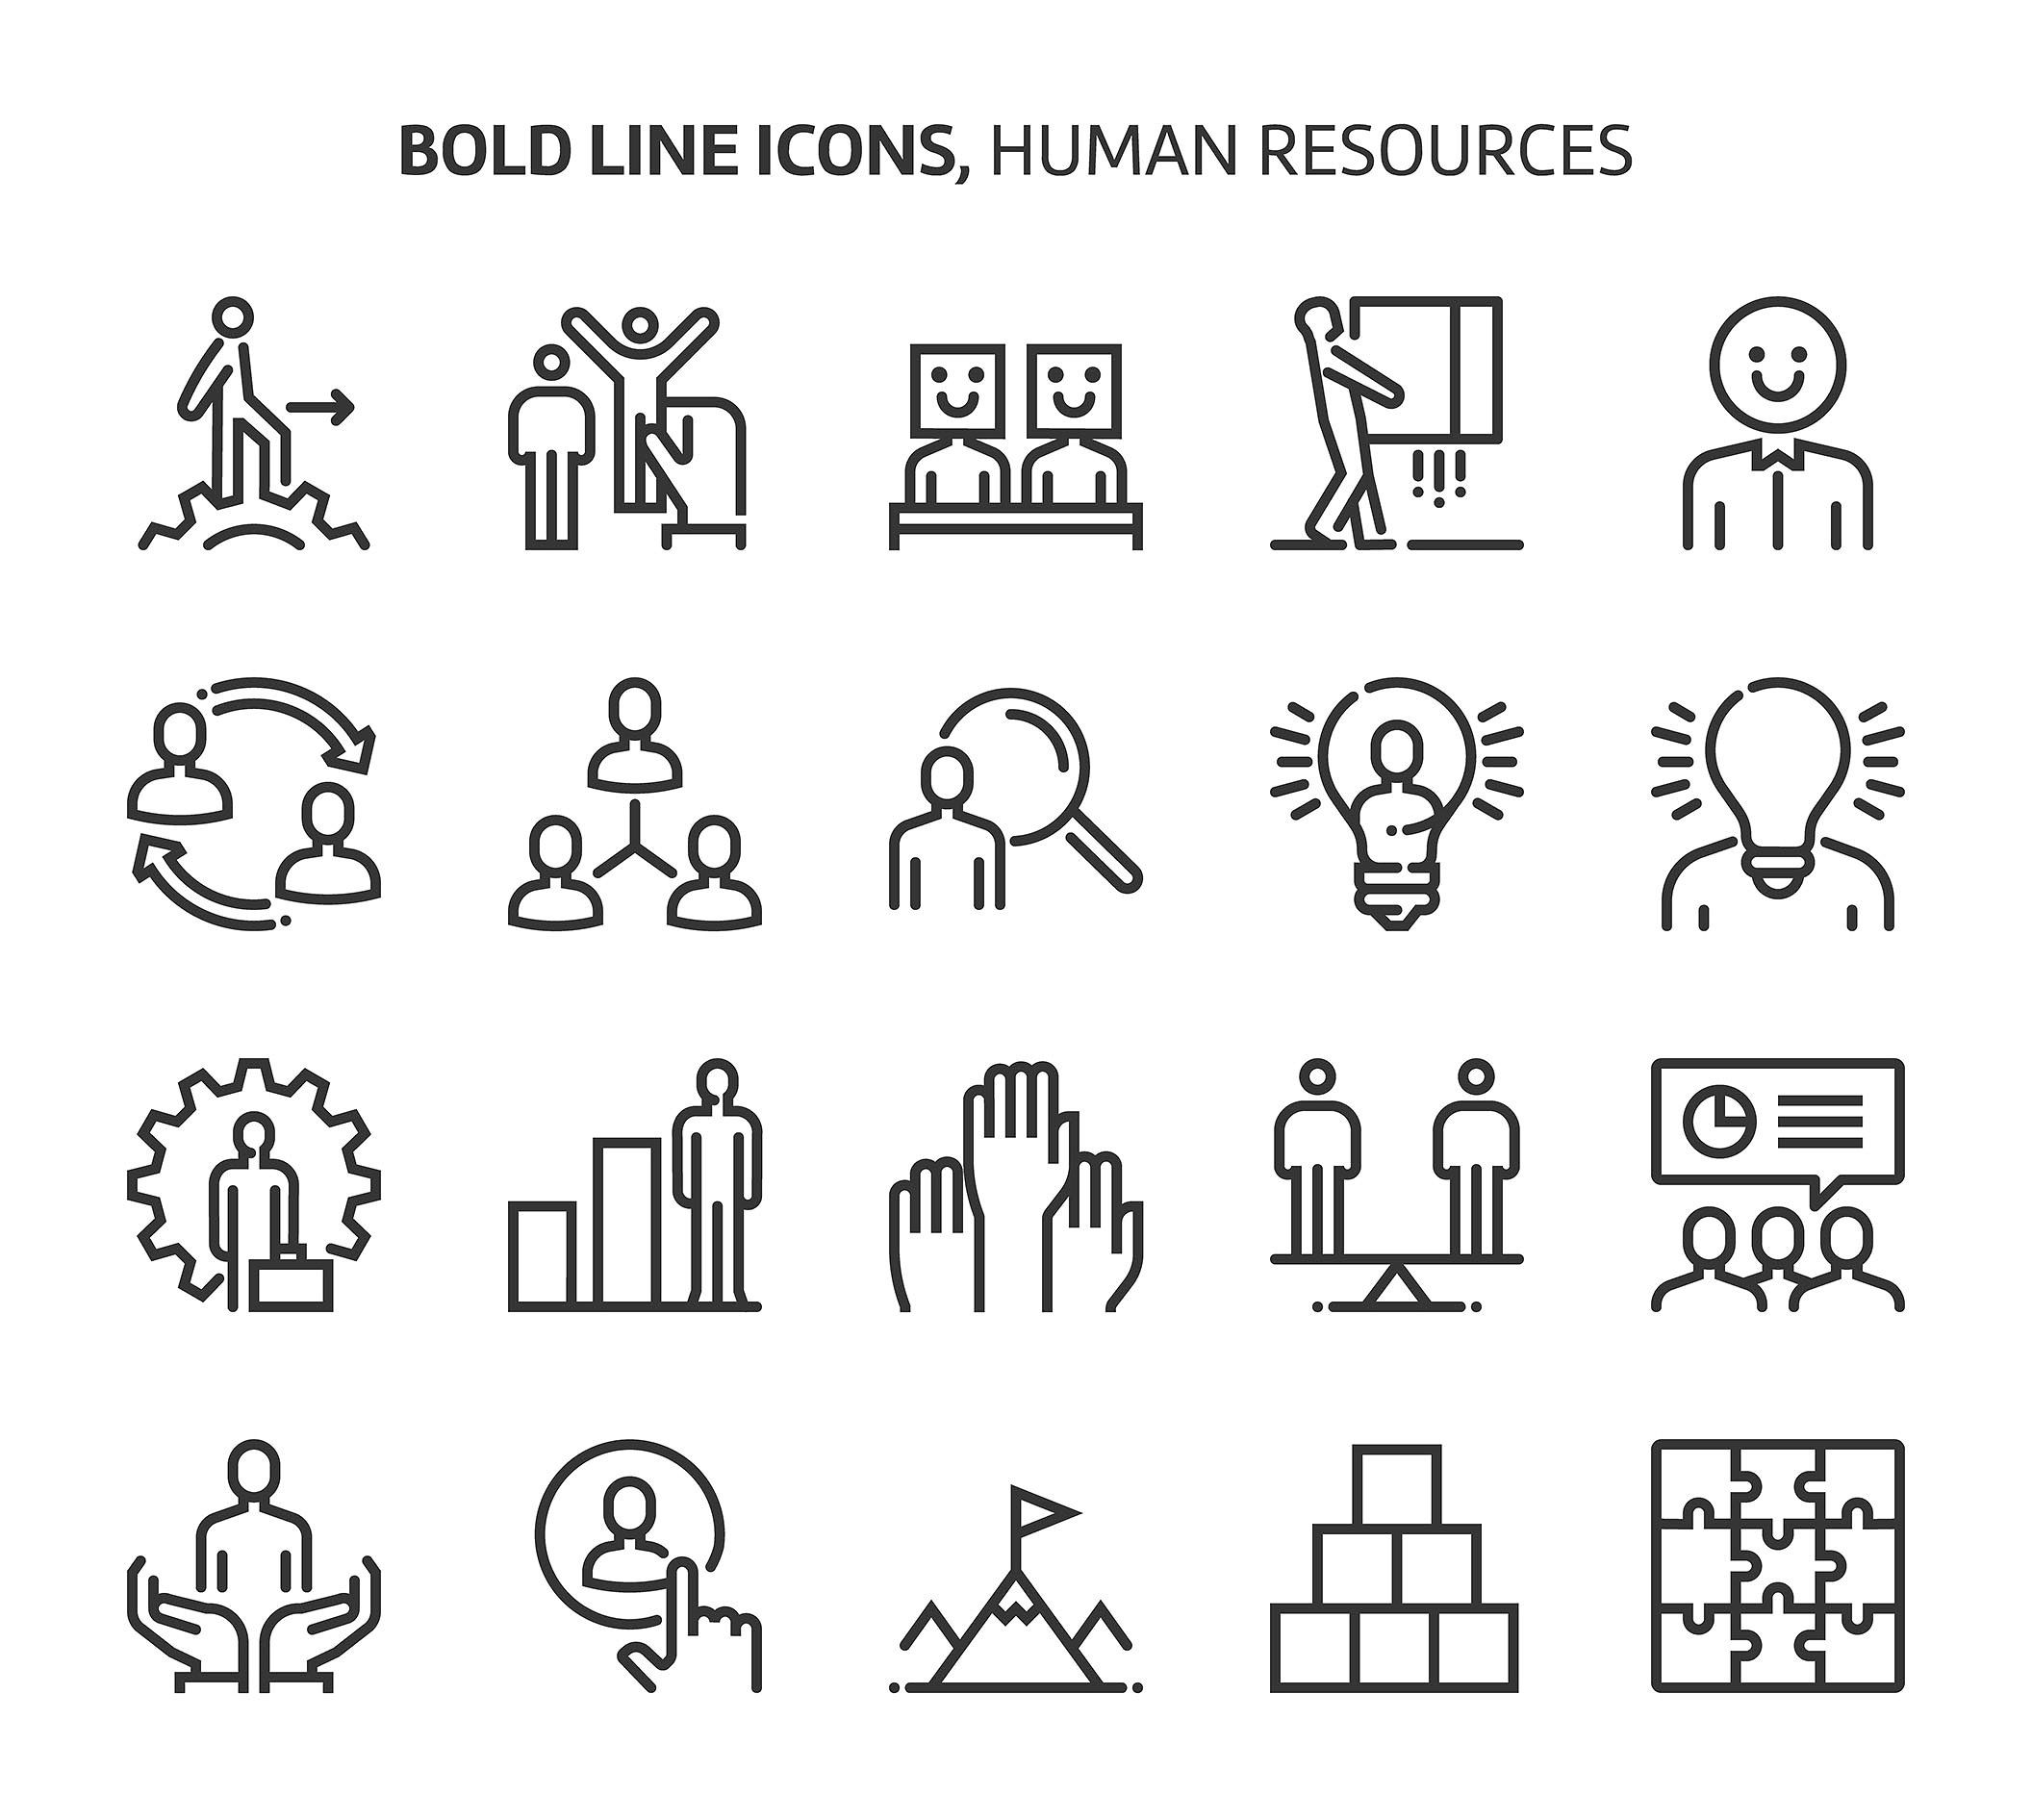 Bold Line Icons Line Icon Human Resources Icon